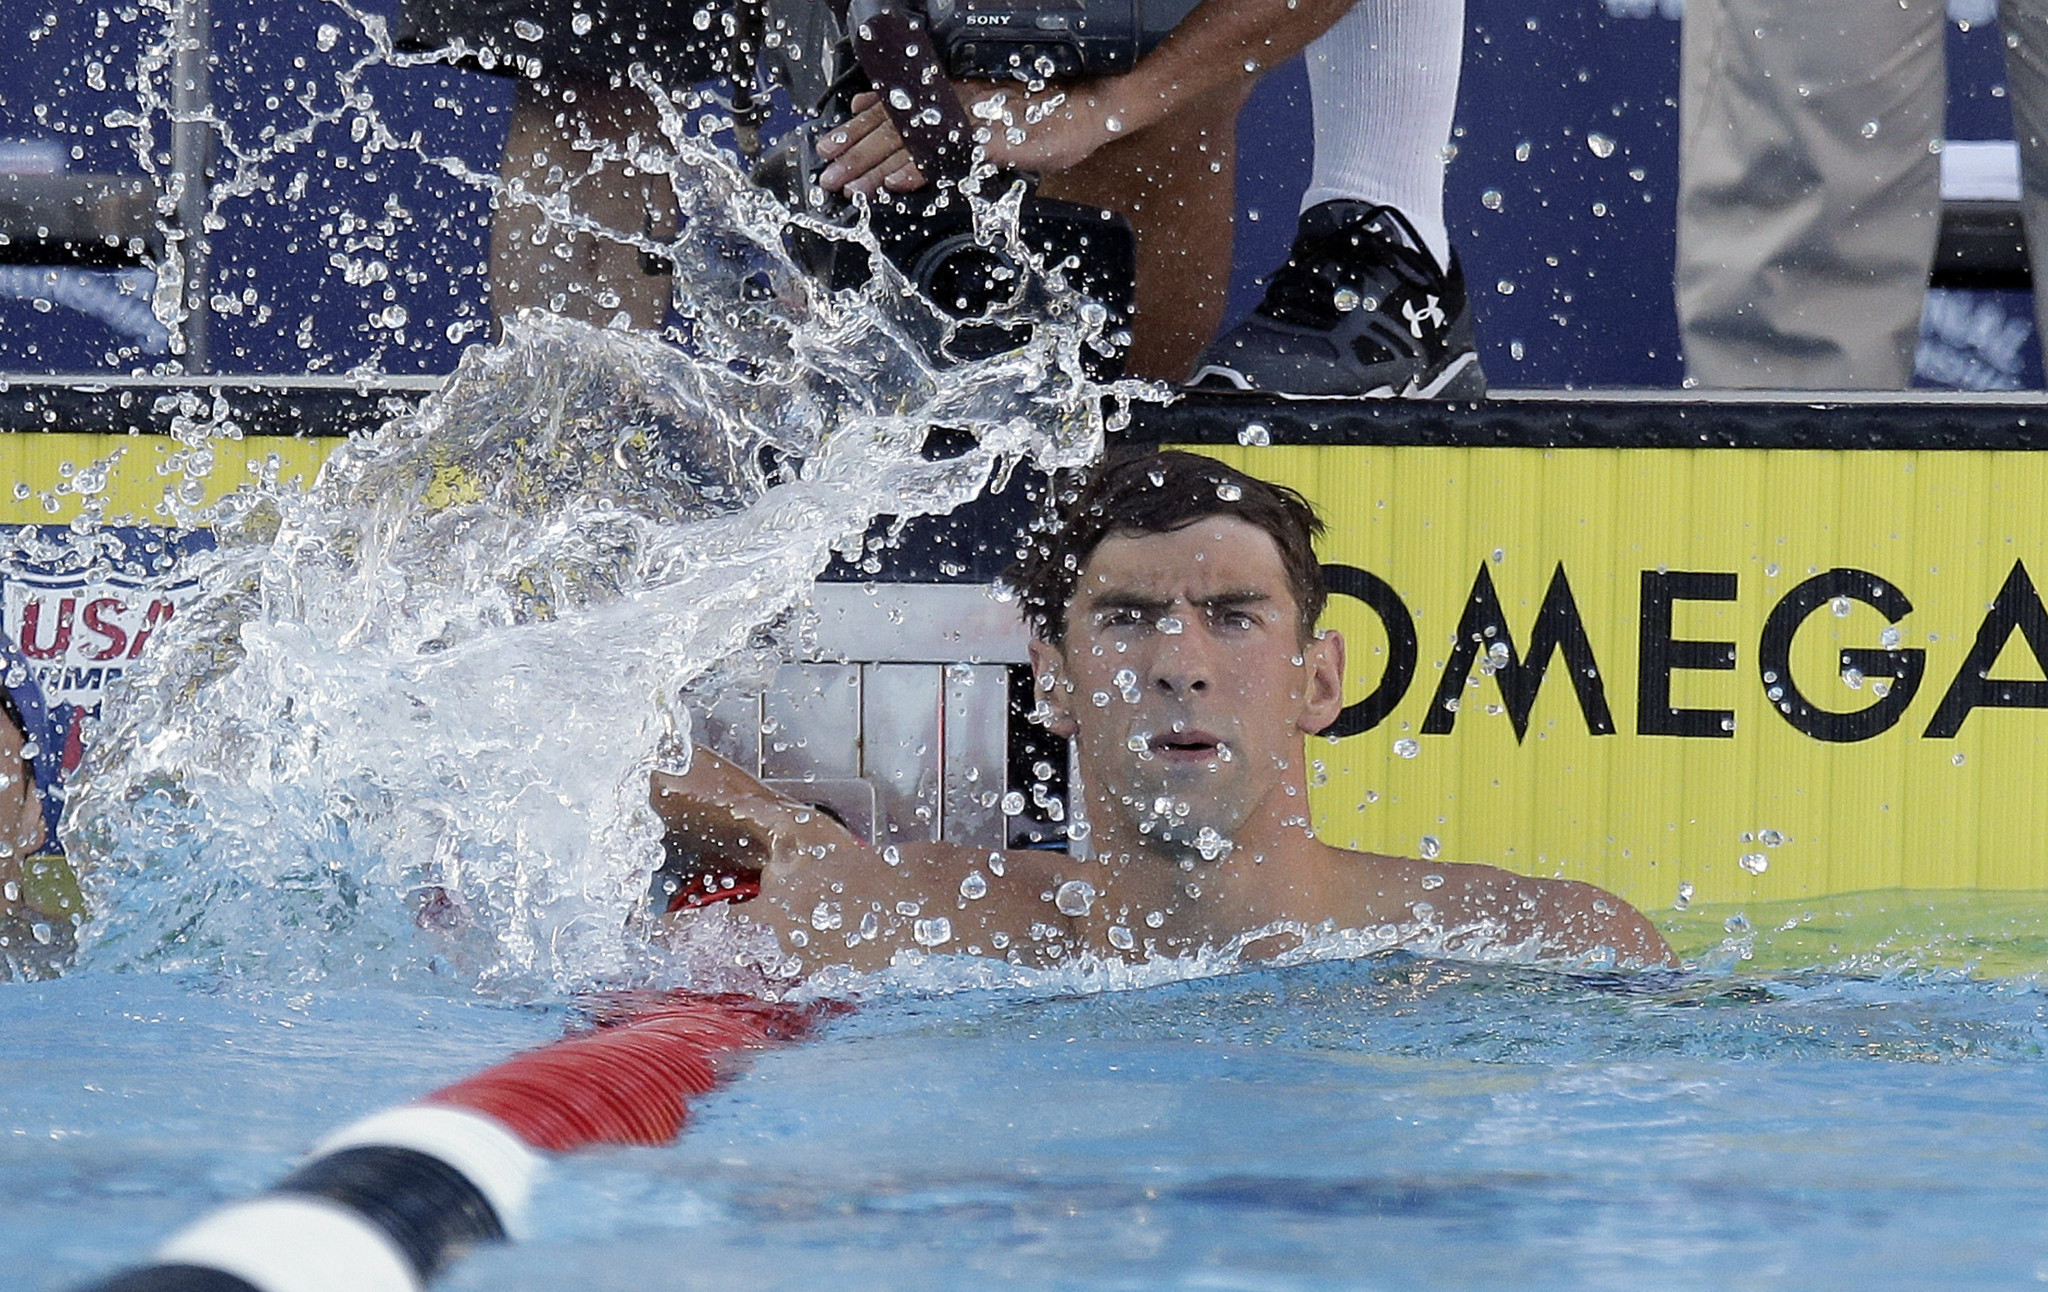 Michael Phelps Goes 3 For 3 At Nationals With Another Strong Swim Baltimore Sun